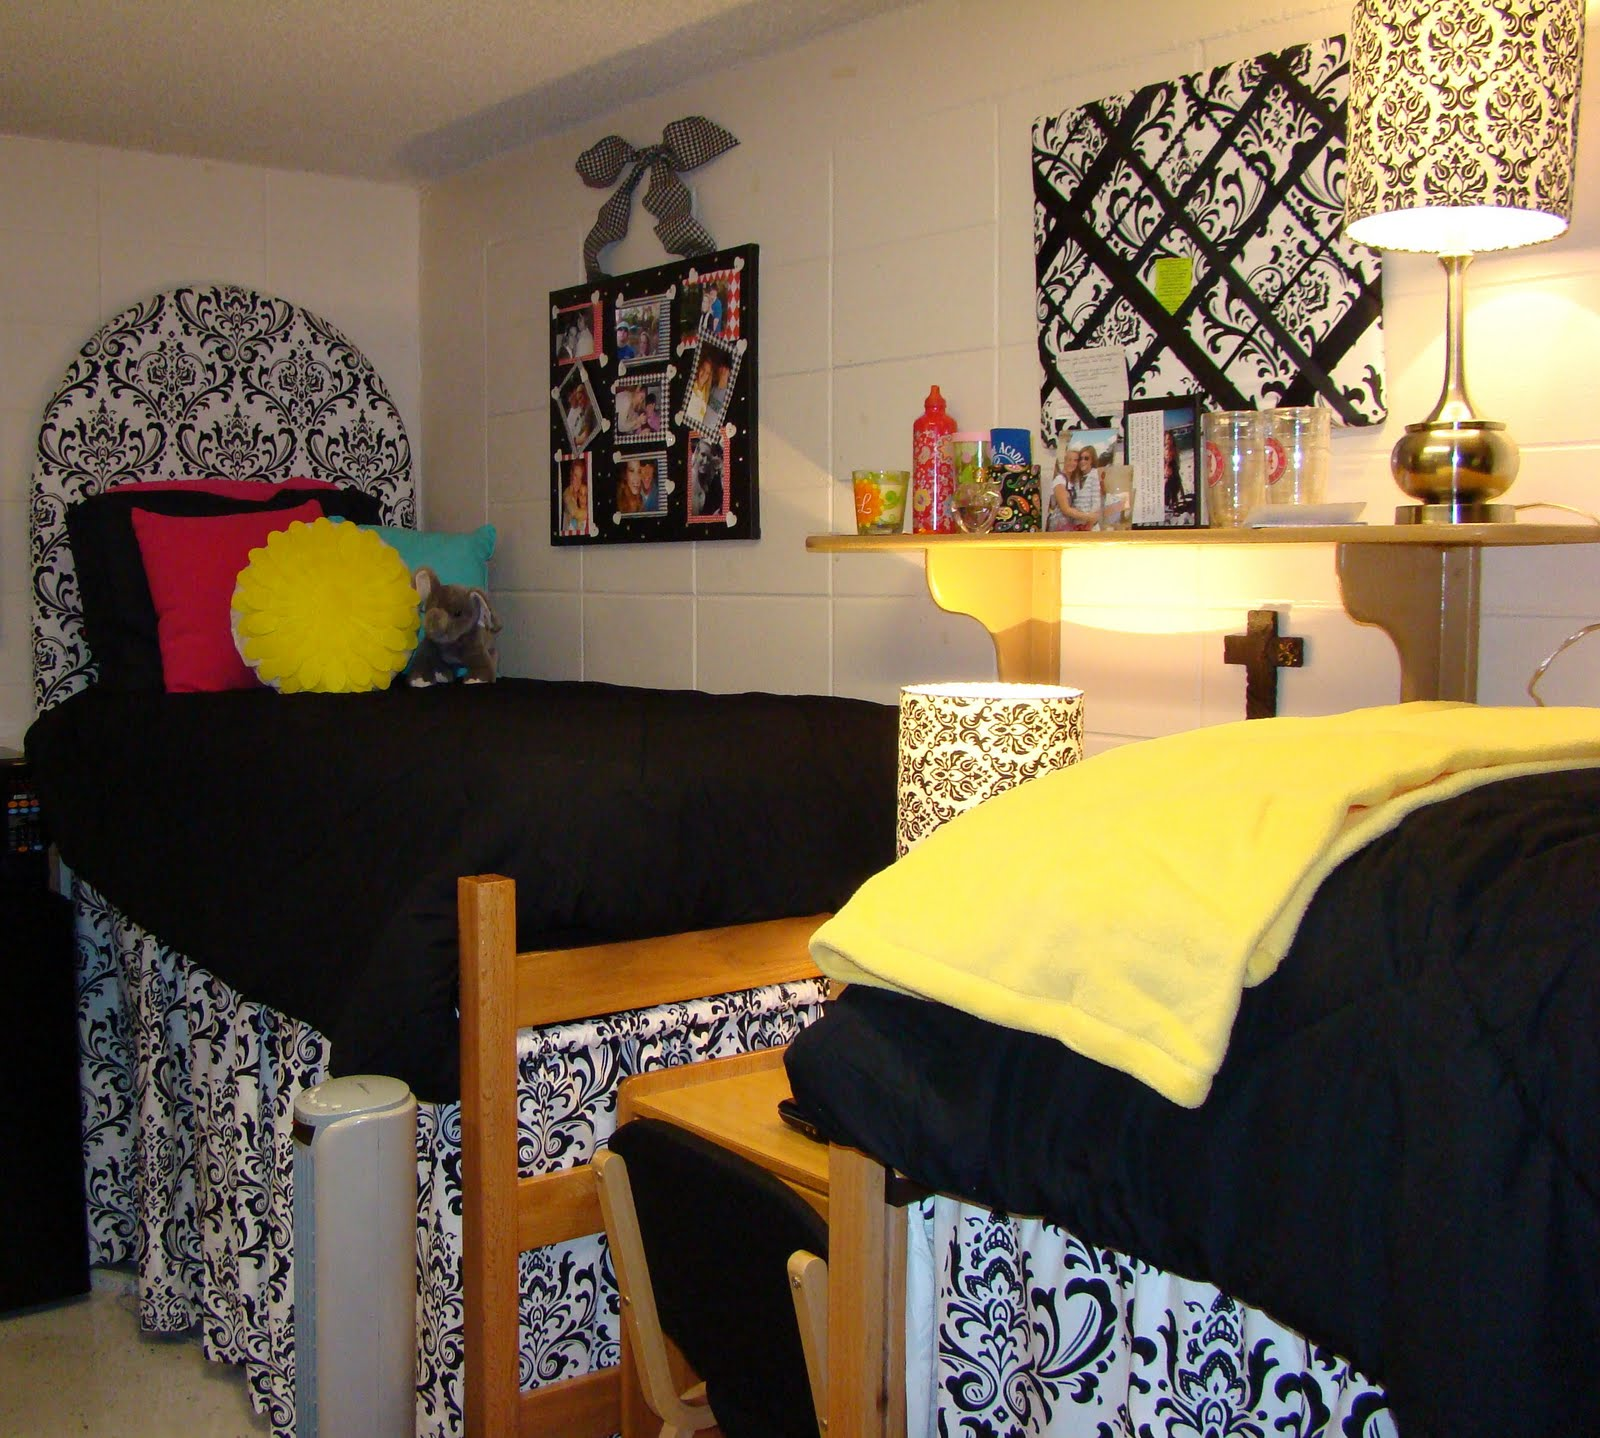 Doodlebug designs mg dorm room upholstered headboard for College bedroom ideas for girls